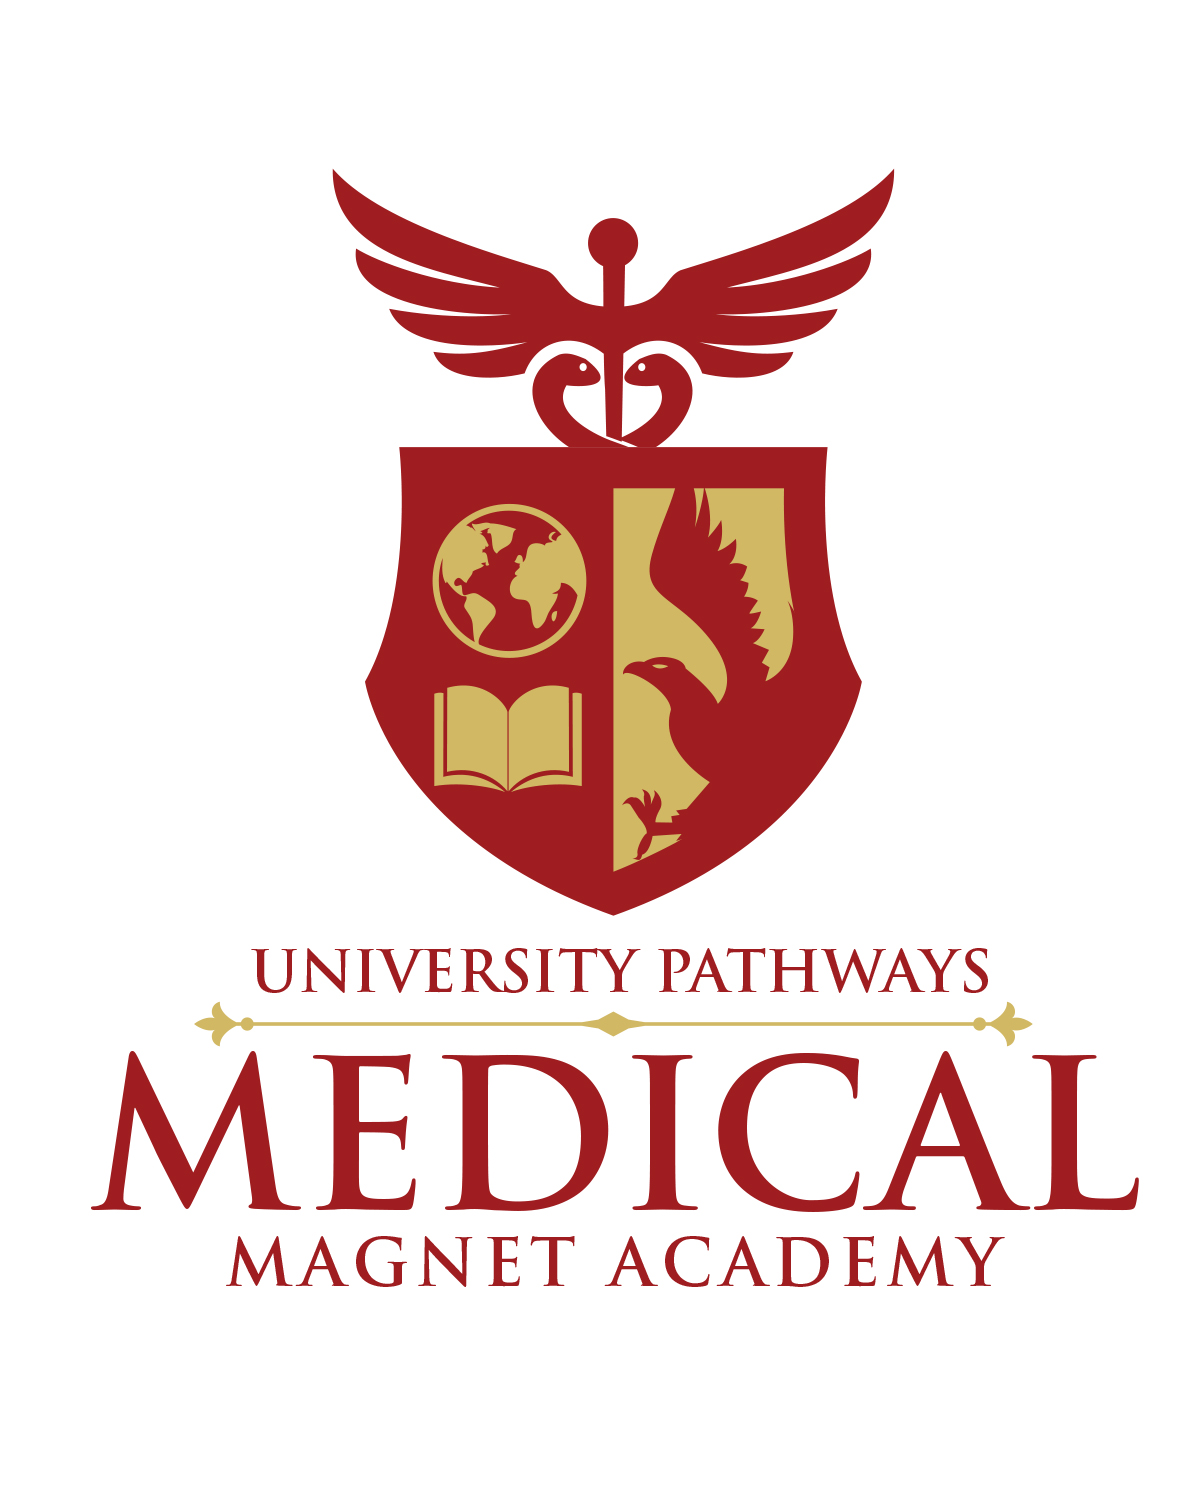 University Pathways Medical Magnet Phoenix